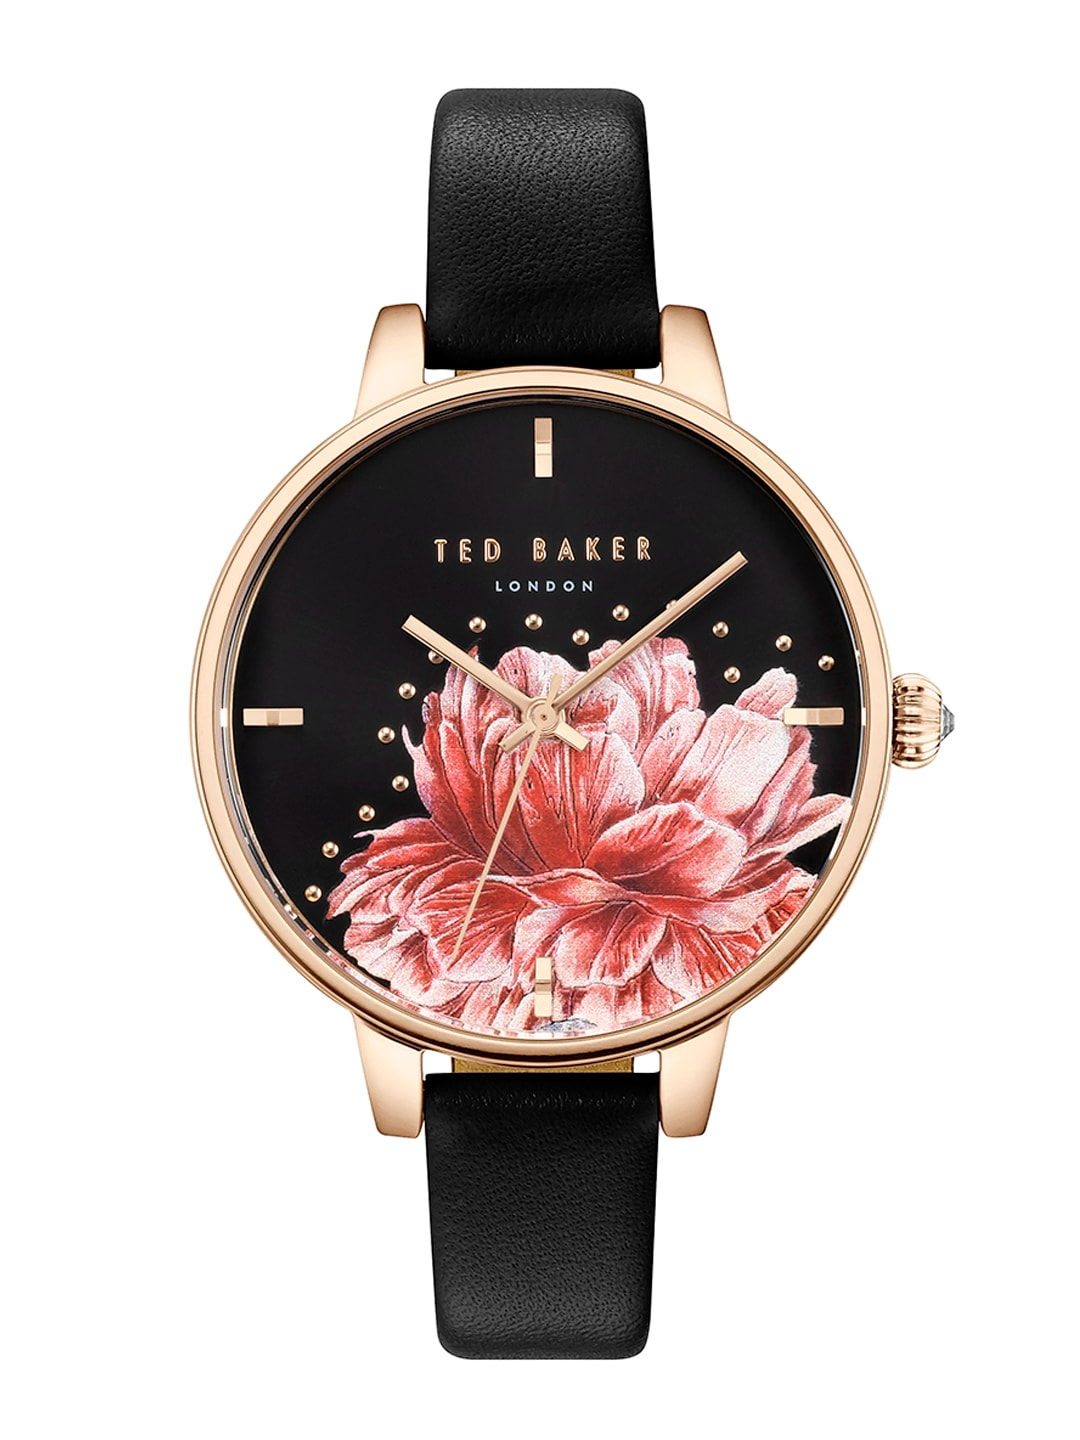 69ef6ddcc Ted Baker Watches - Buy Ted Baker Watches online in India